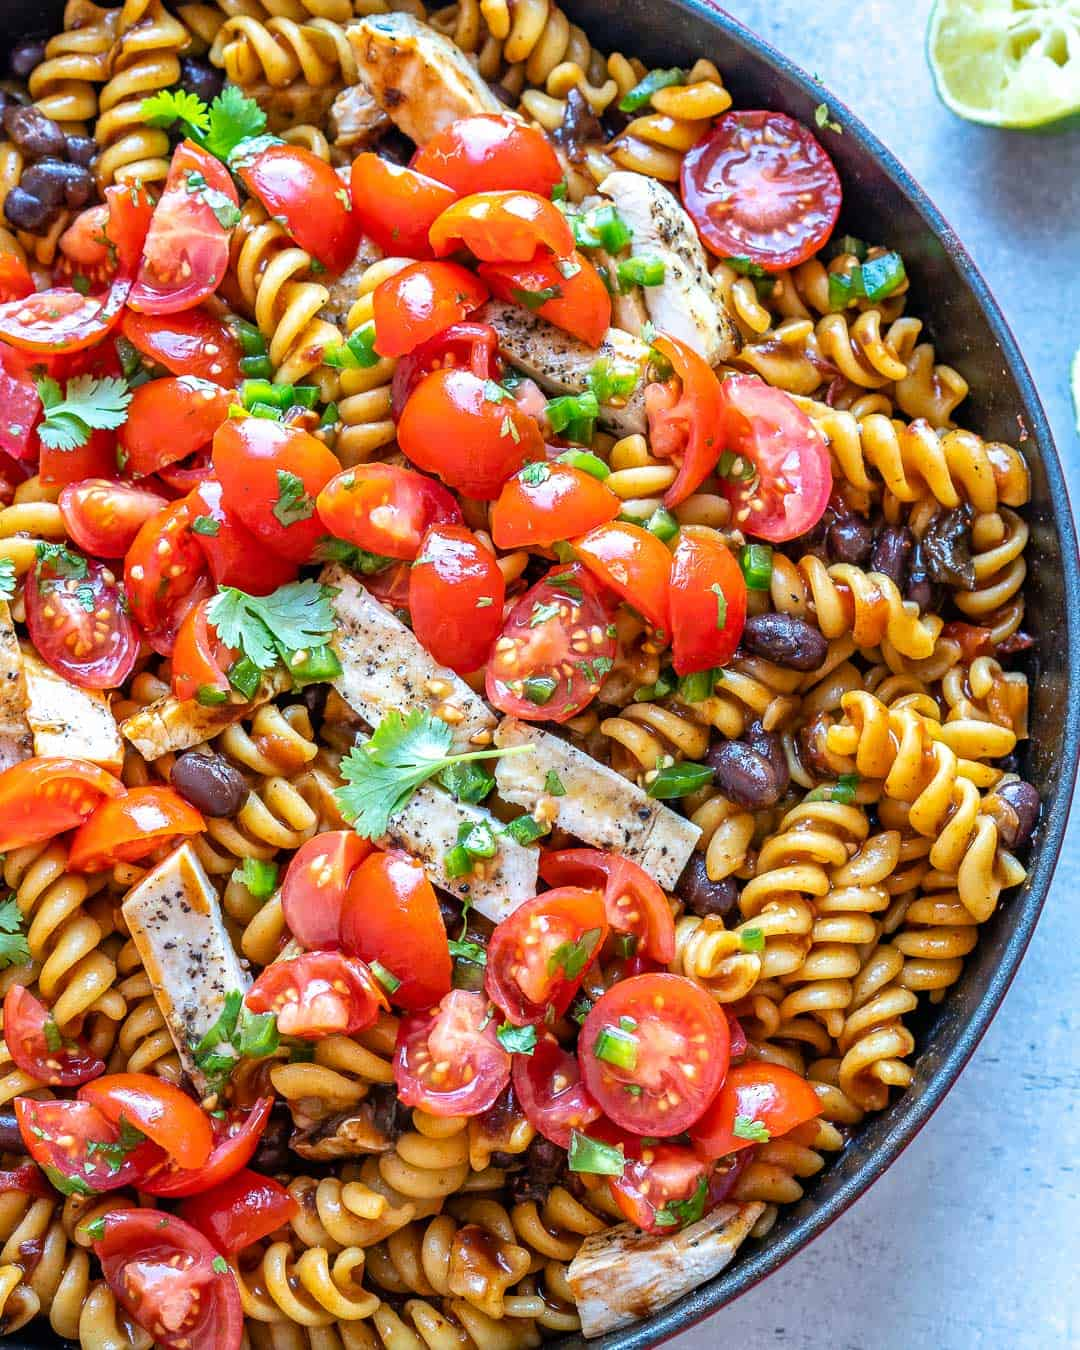 Partial pot of Mexican Chipotle Pasta with tomatoes and cilantro on top